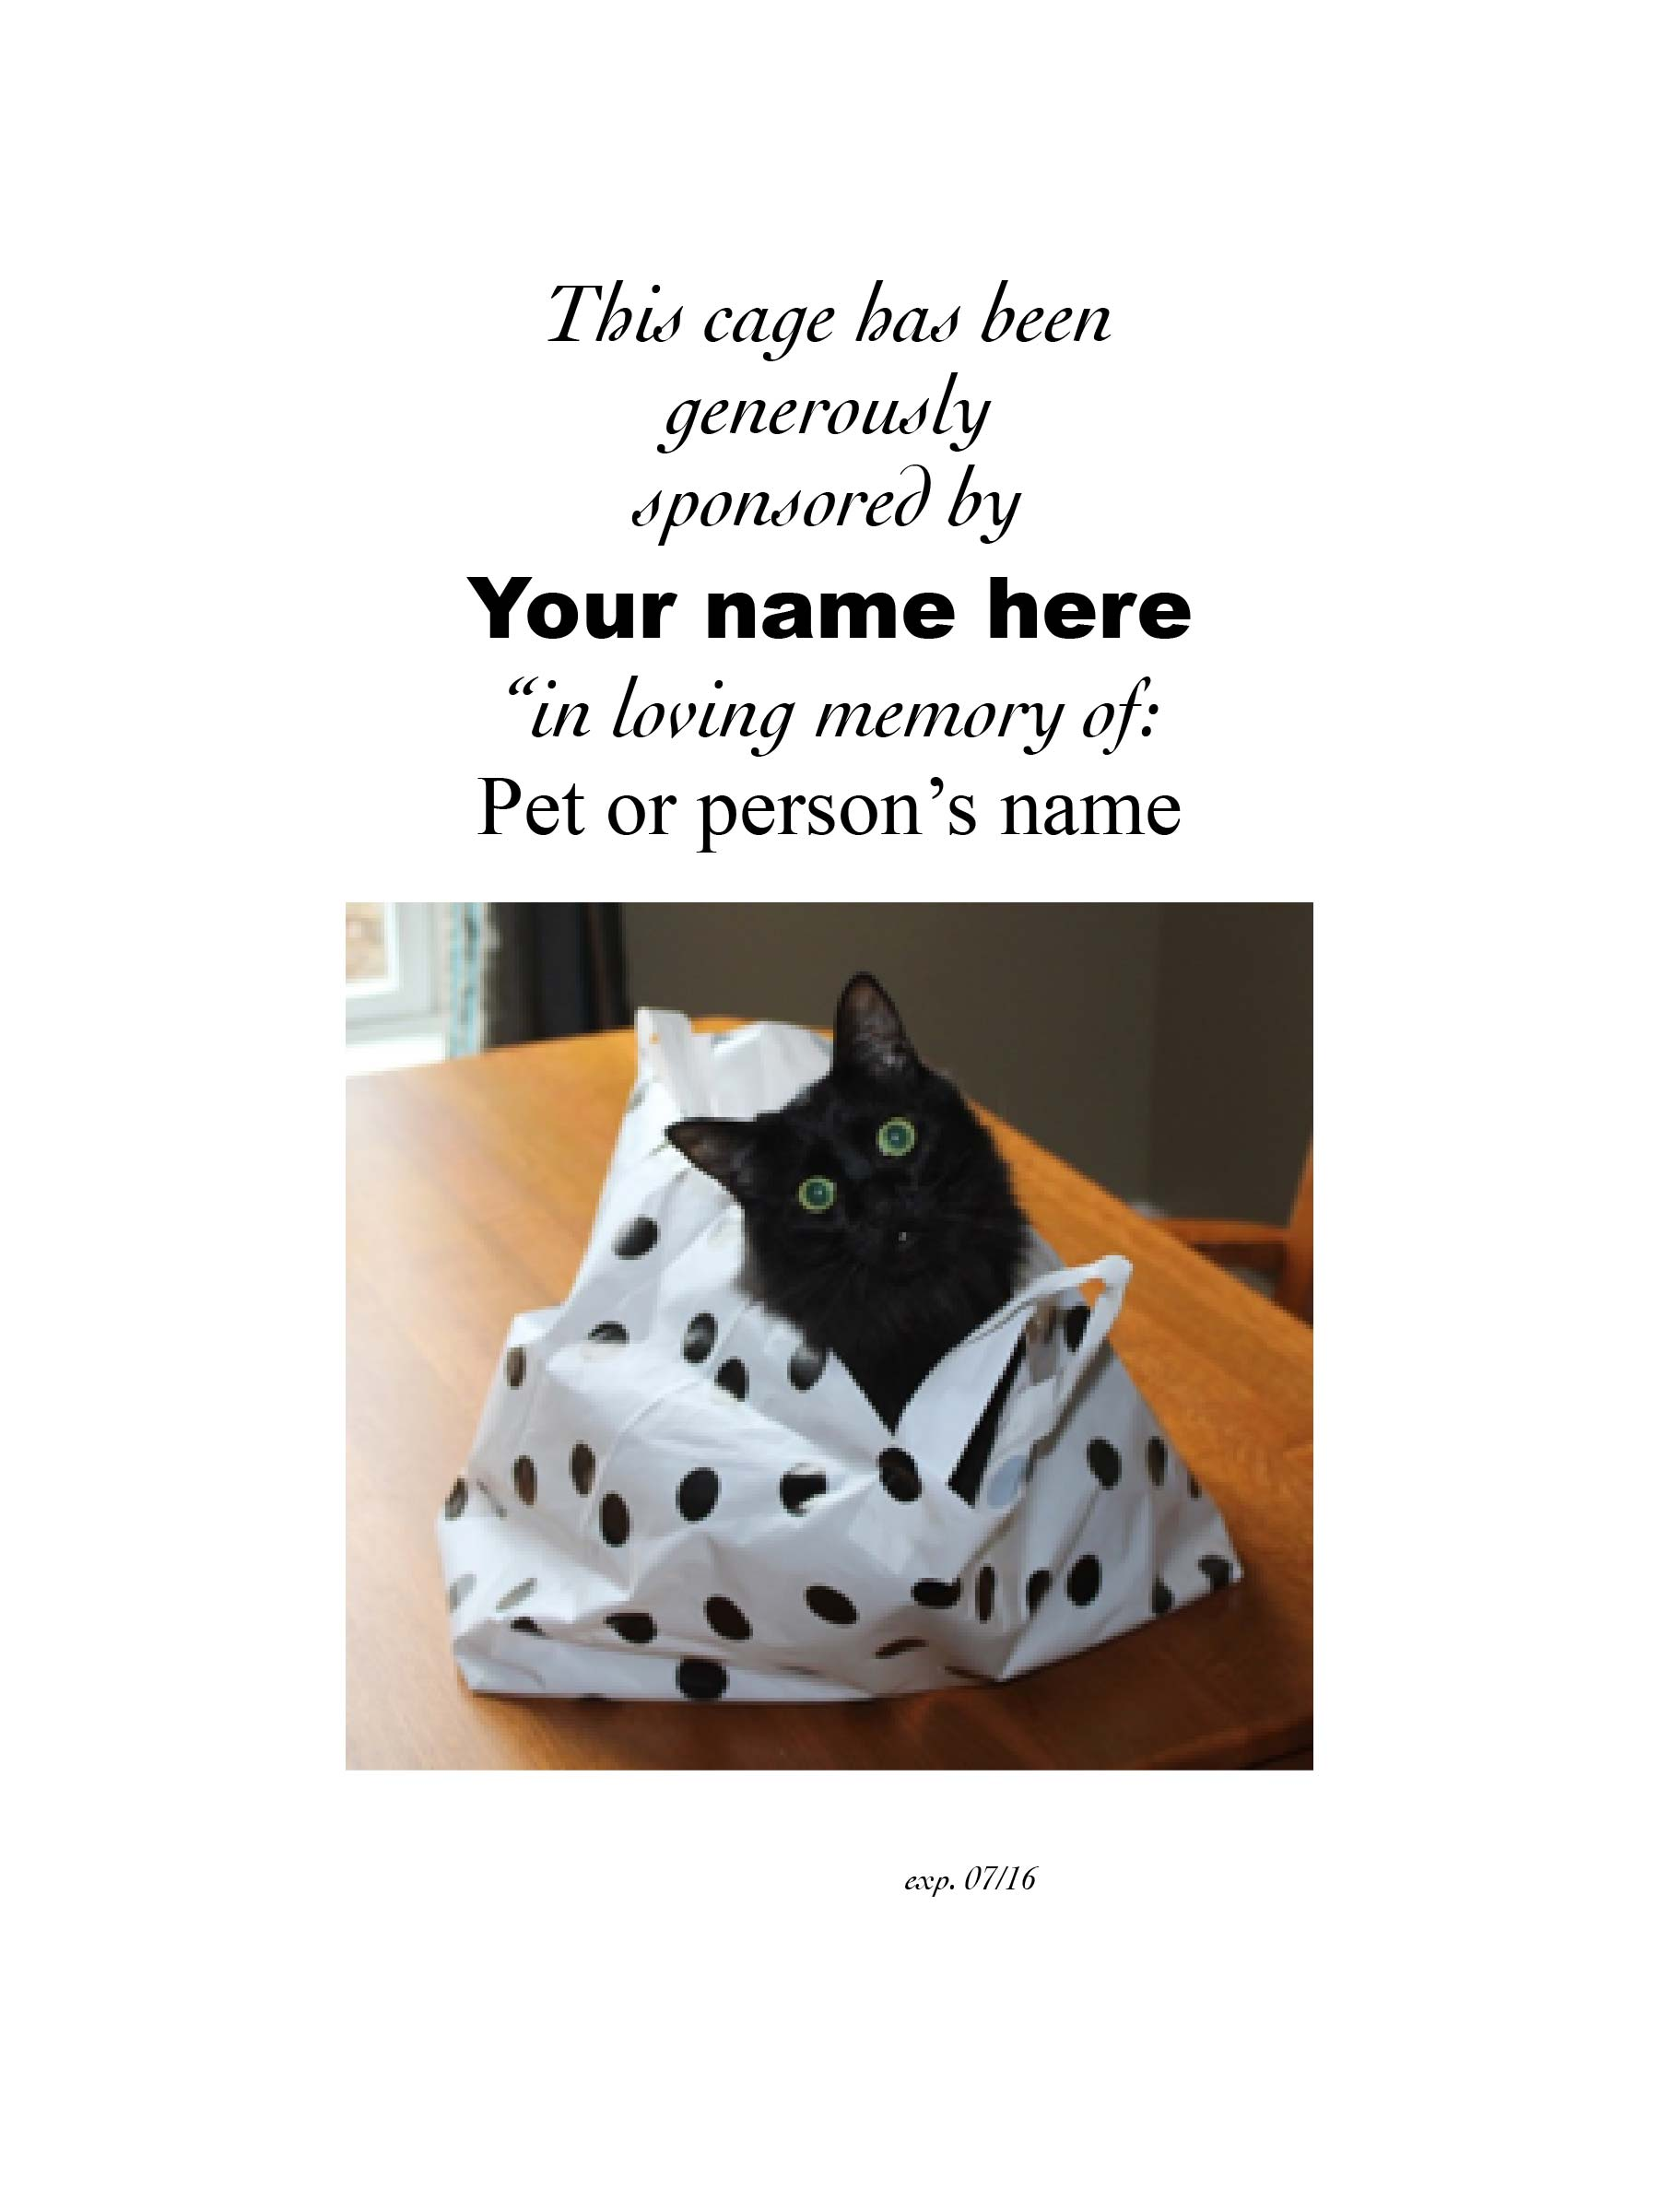 Sponsor a cage - cat picture